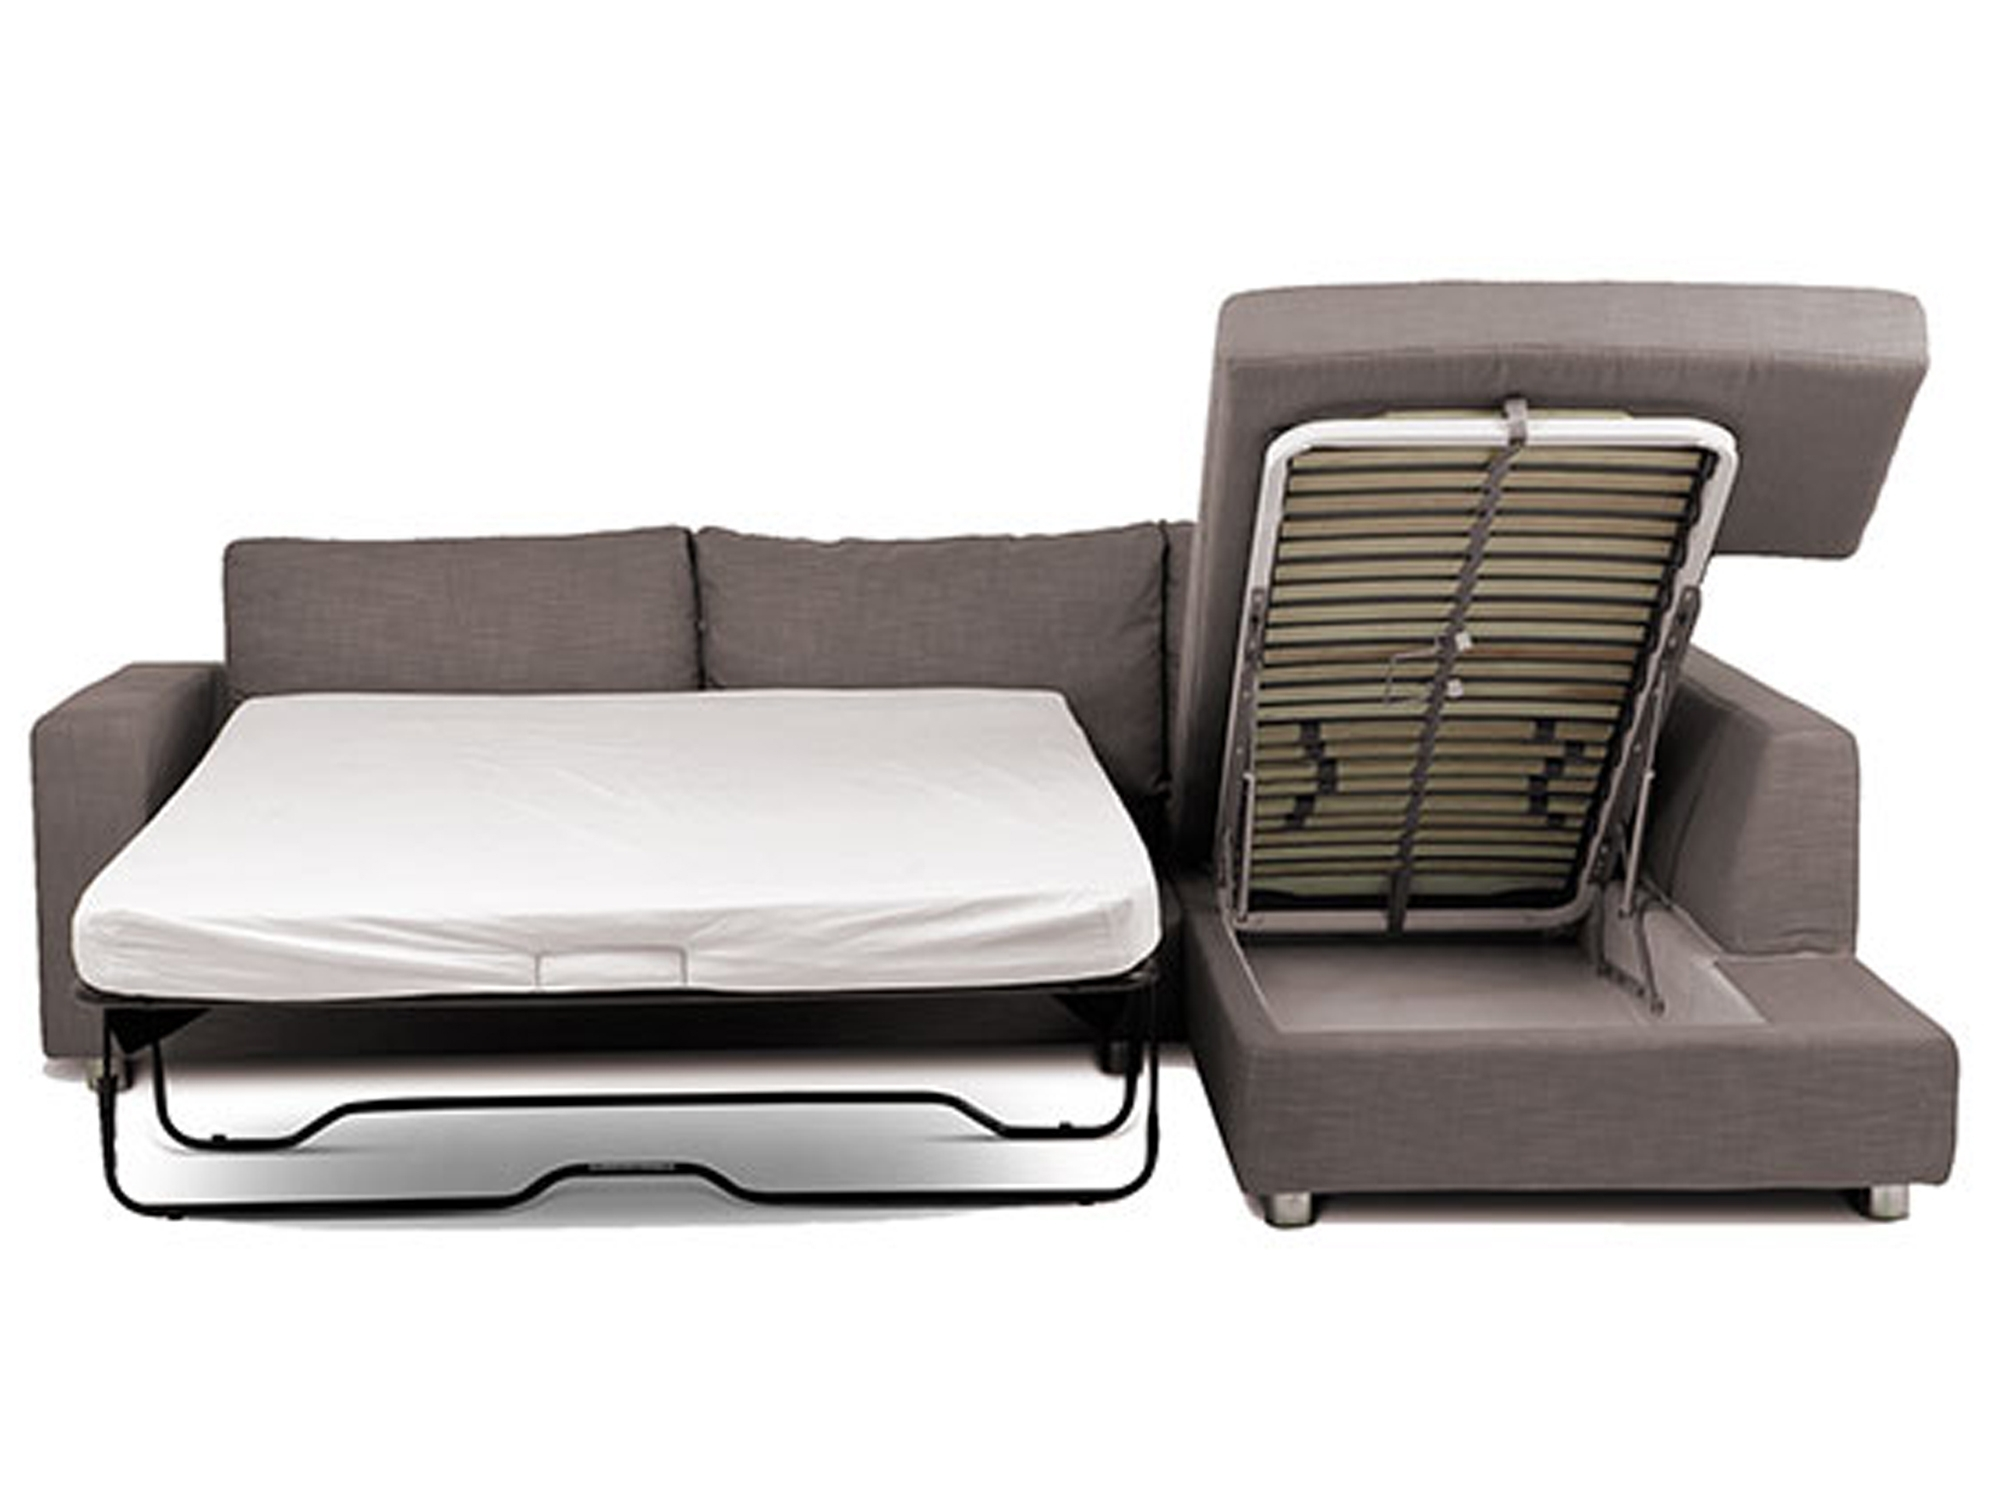 Famous Chaise Sofa Beds With Storage Within Sofas: Classic Meets Contemporary Chaise Sofa Bed For Ideal Living (View 5 of 15)